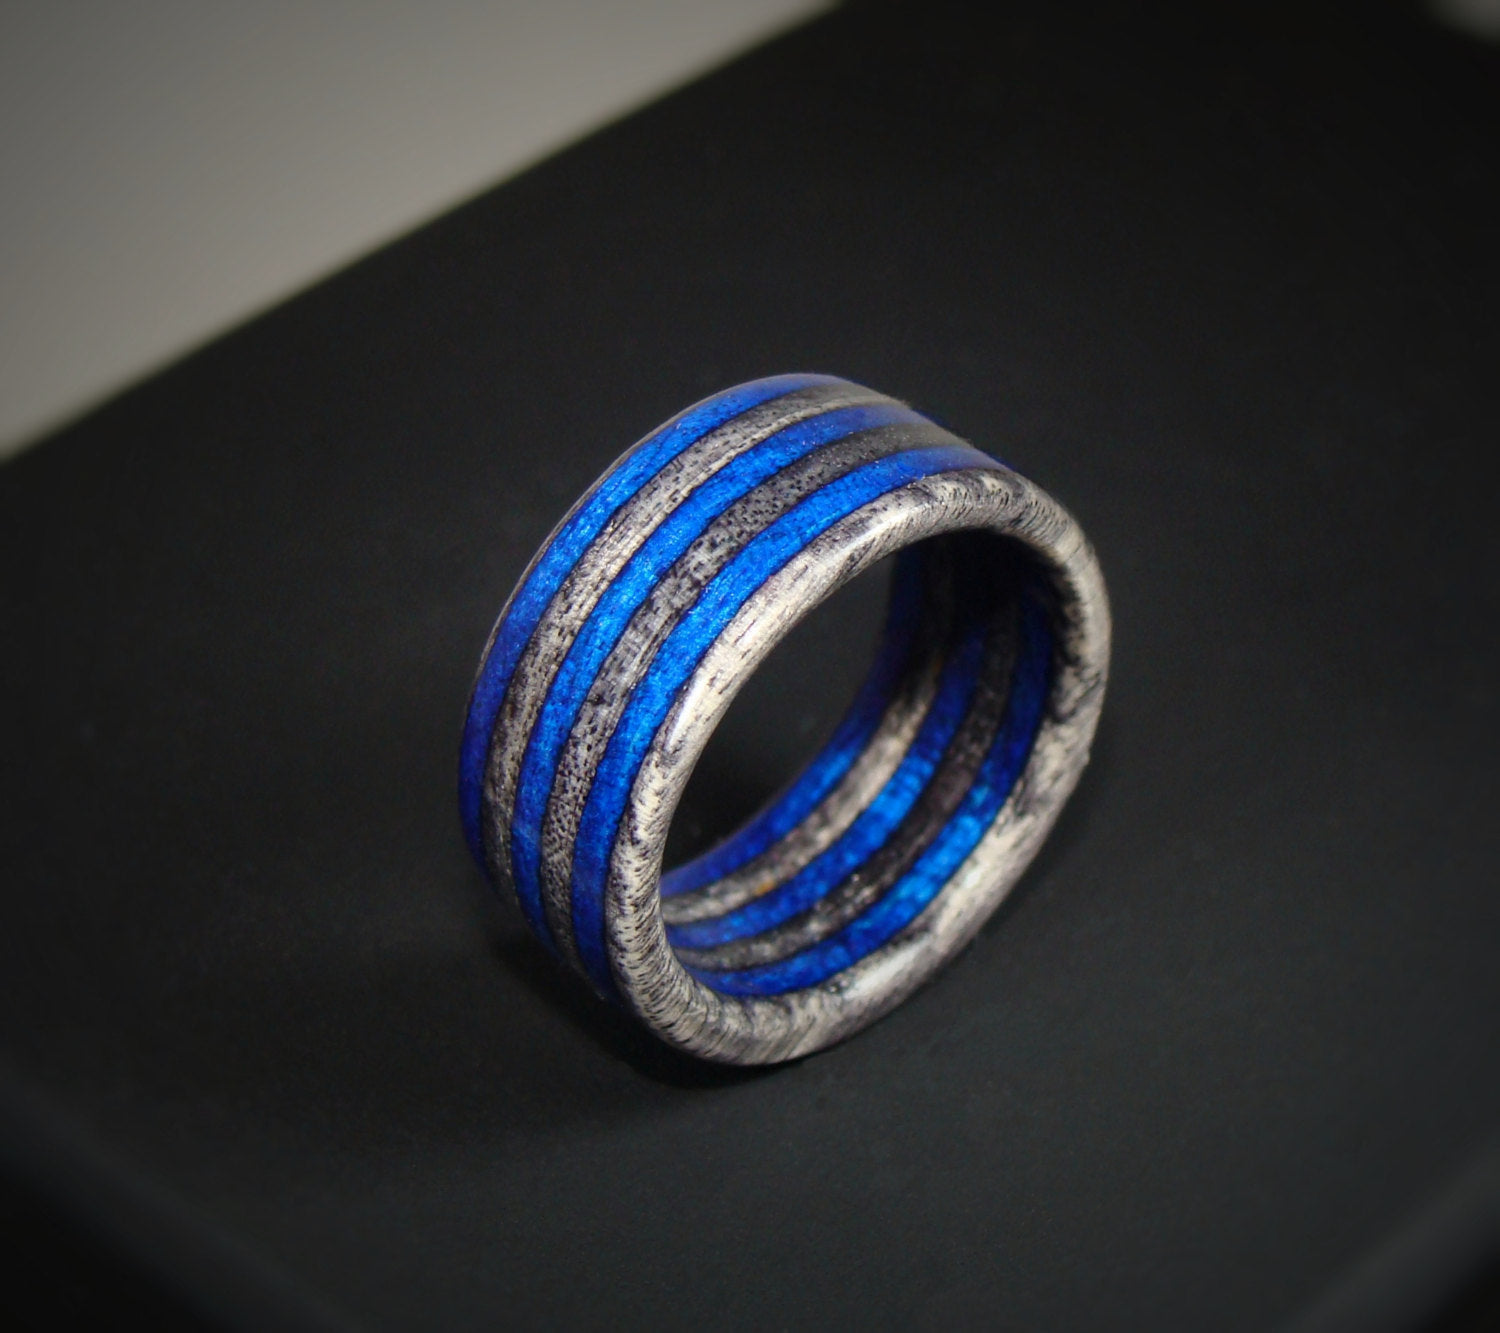 Spectraply Blue Charcoal Gray Wood Ring - Bentwood or Solid Wood - Art and Soule